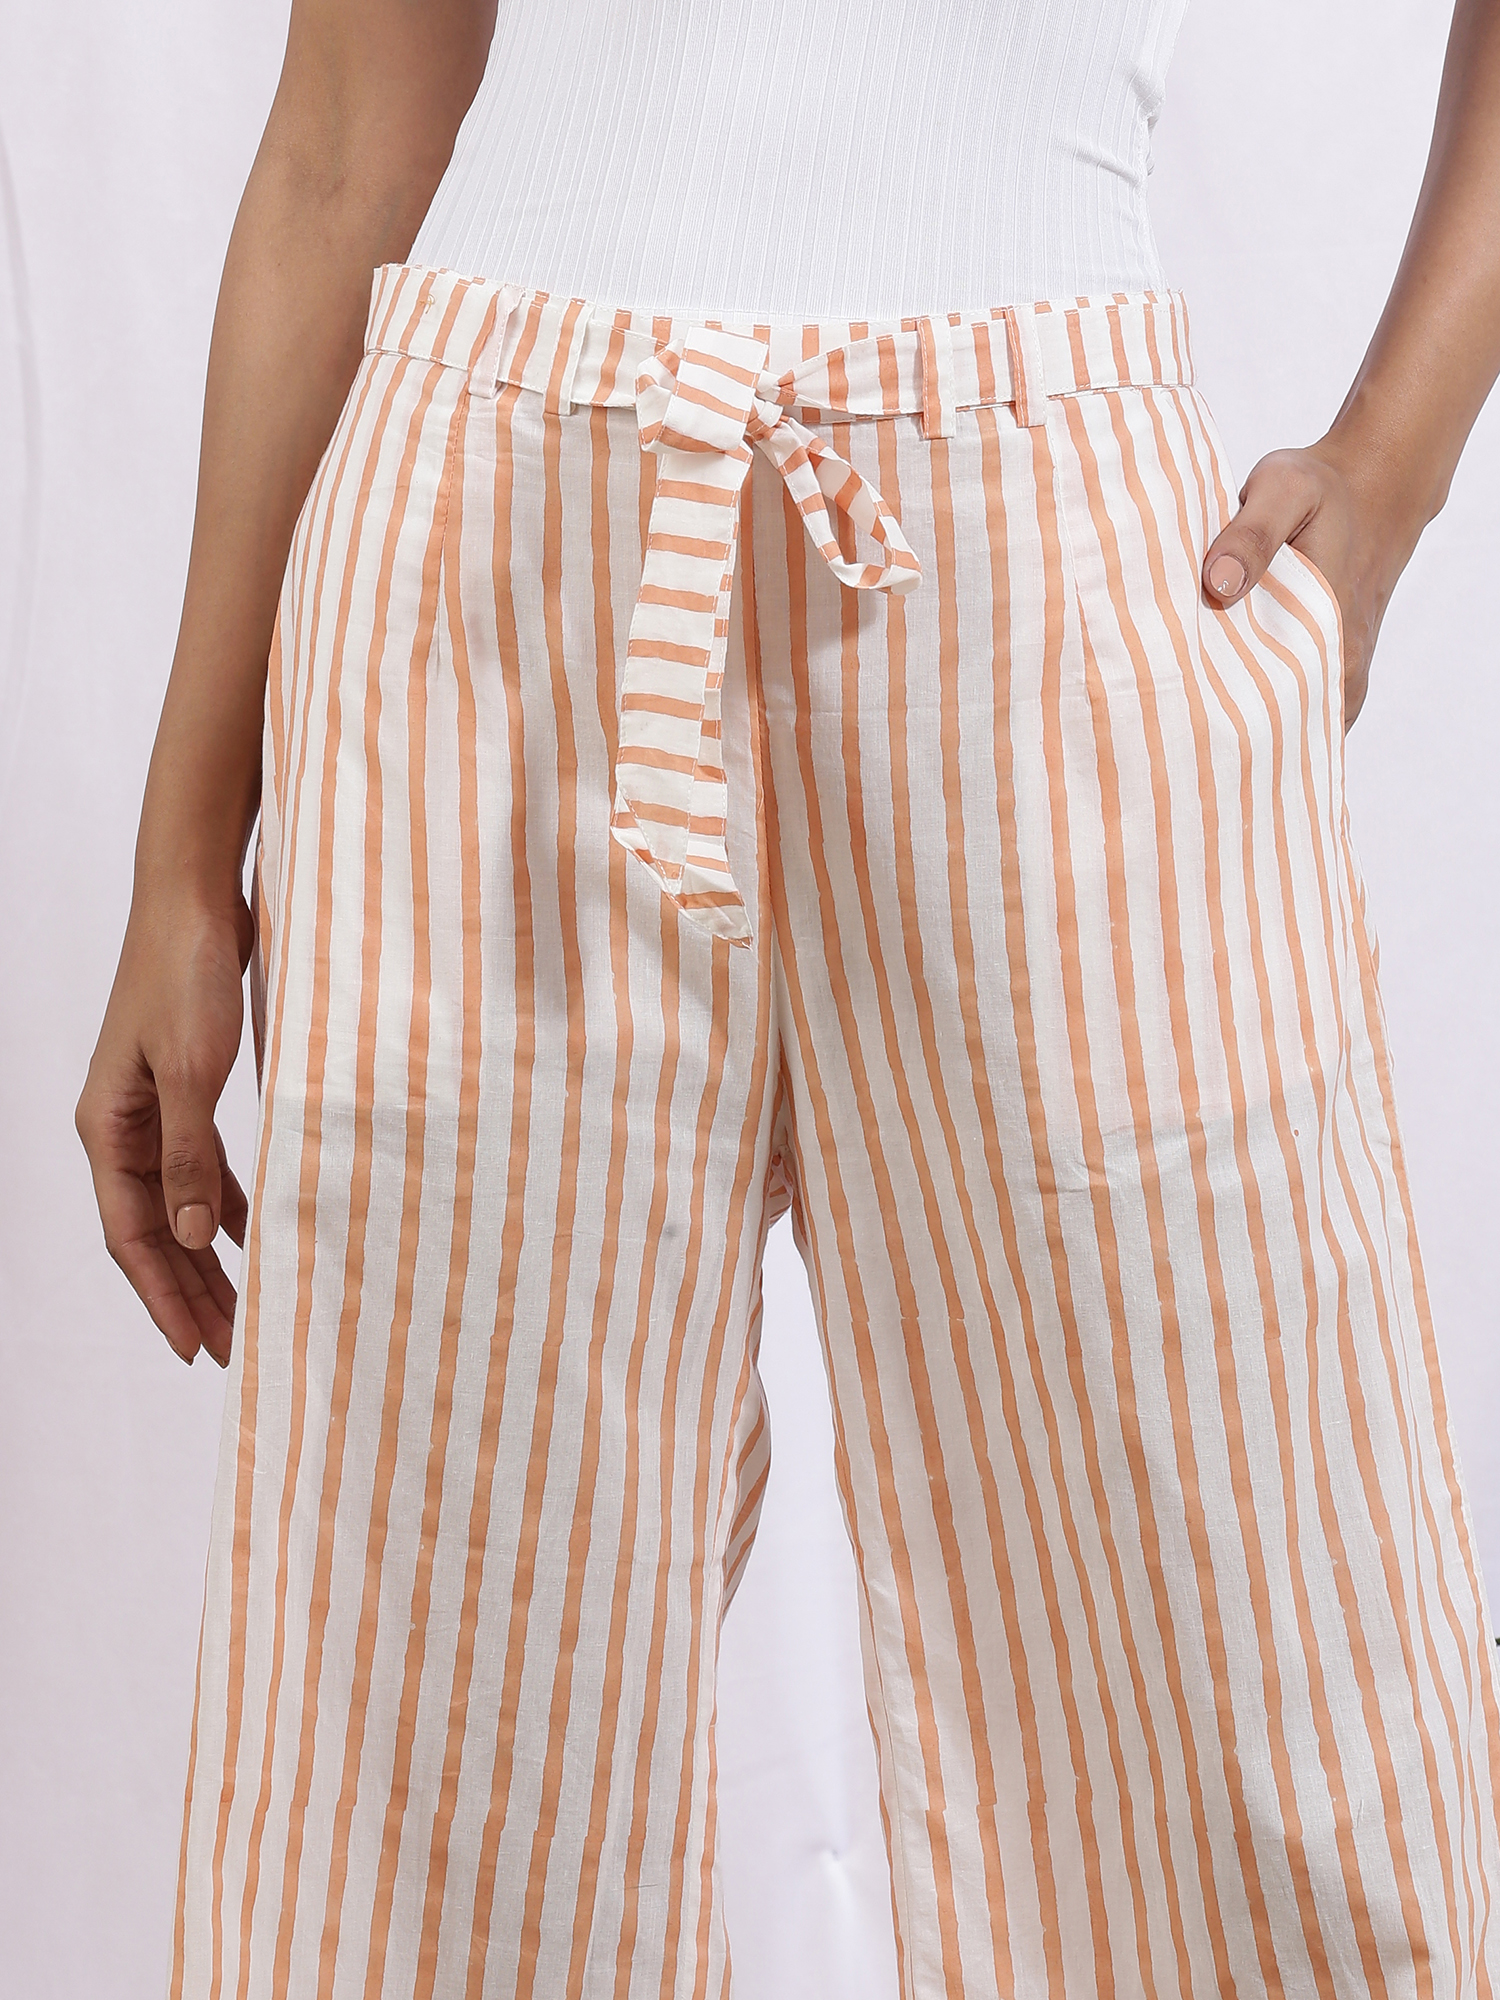 Mangue stripe Pants